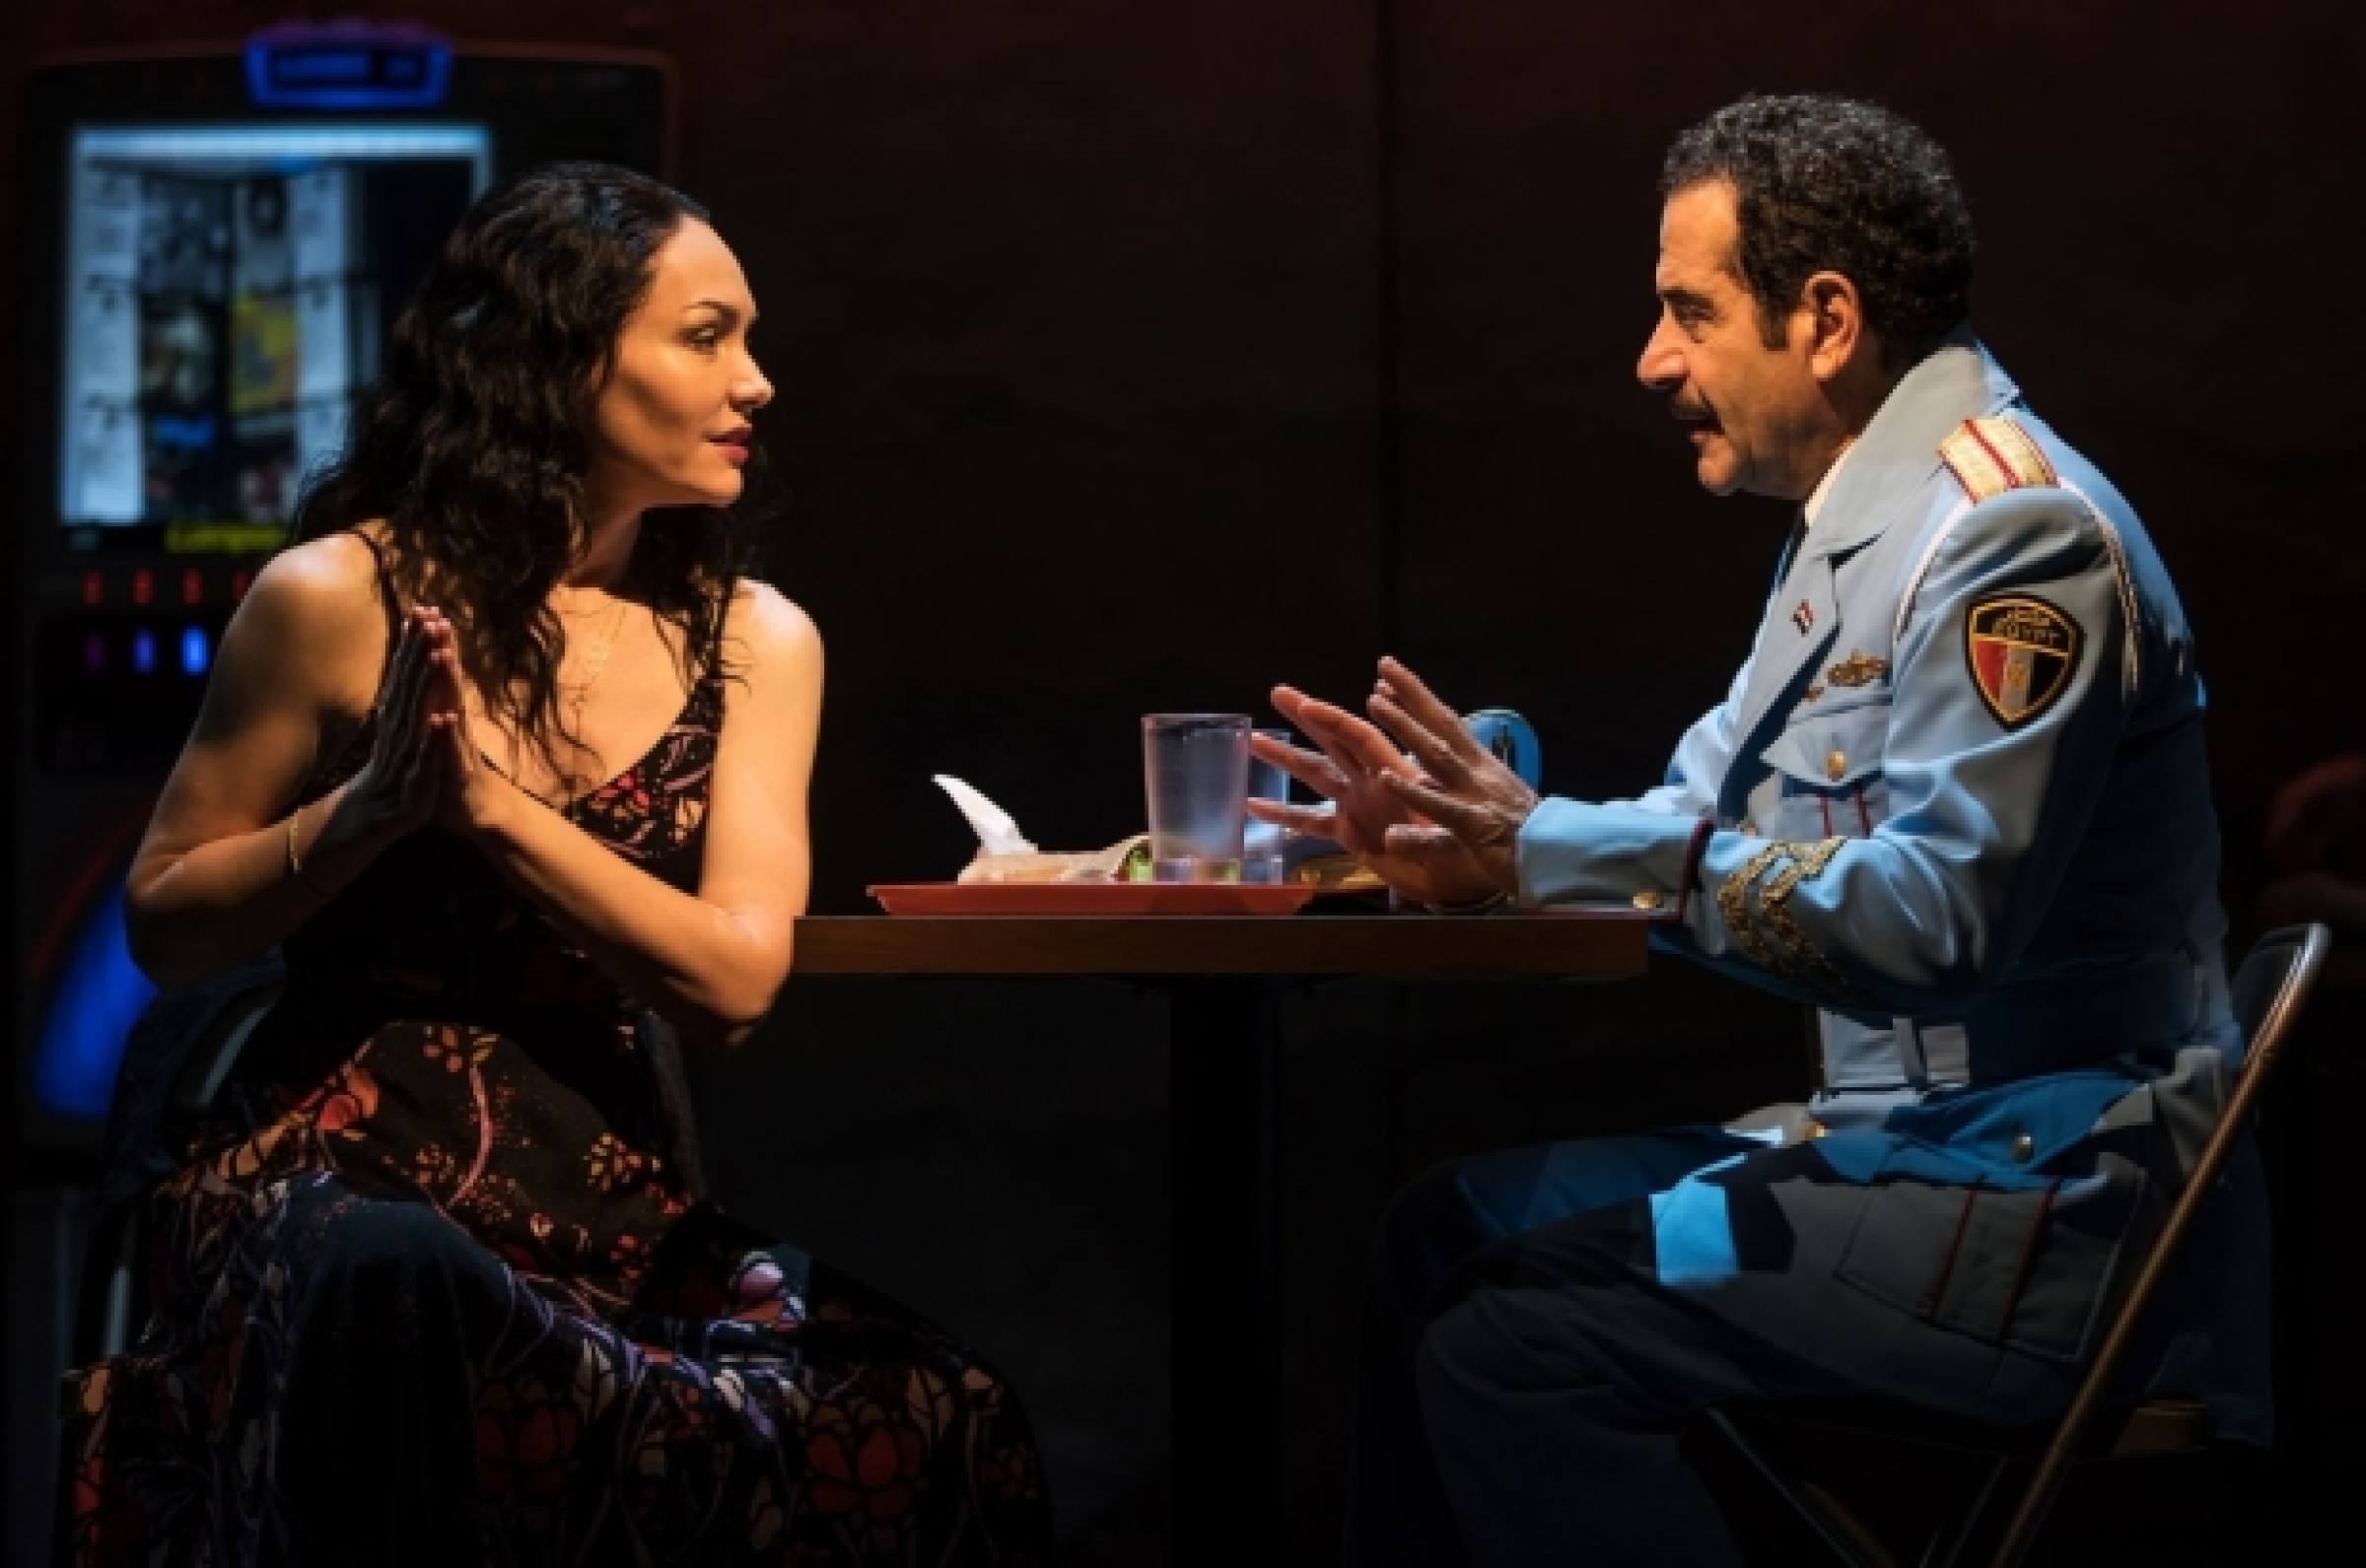 New York round up: A best new musical in The Band's Visit and will